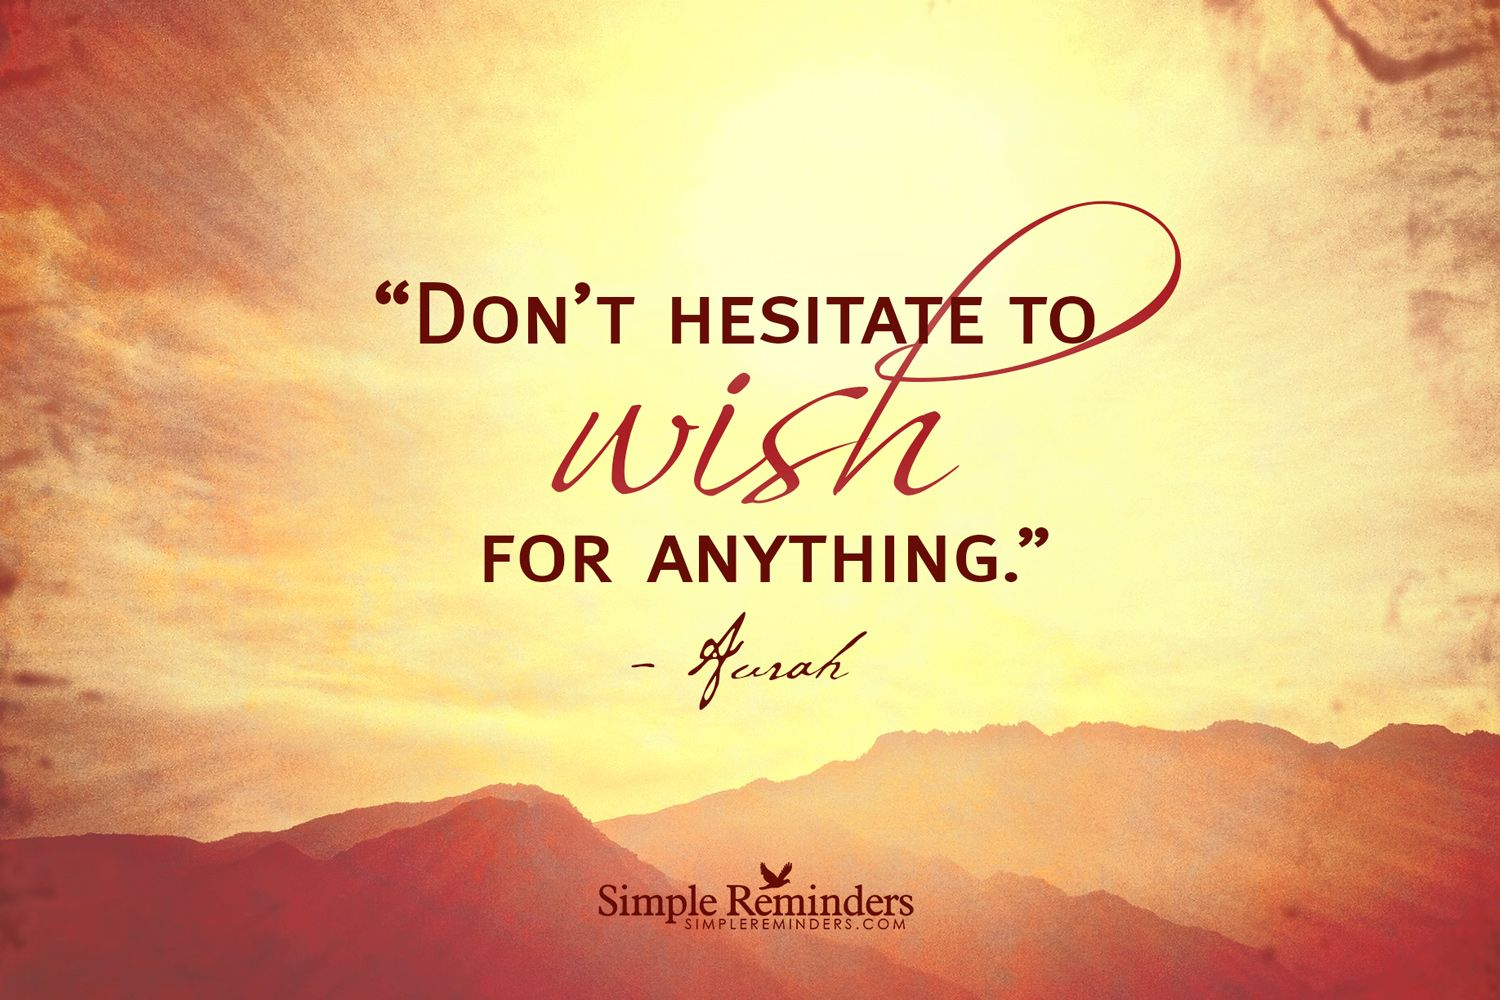 Don't hesitate to wish for anything. ~Aurah  #inspiration #aurah #wish #hopes #dreams #desires #empowerment  @SIMPLE Comunicación Reminders